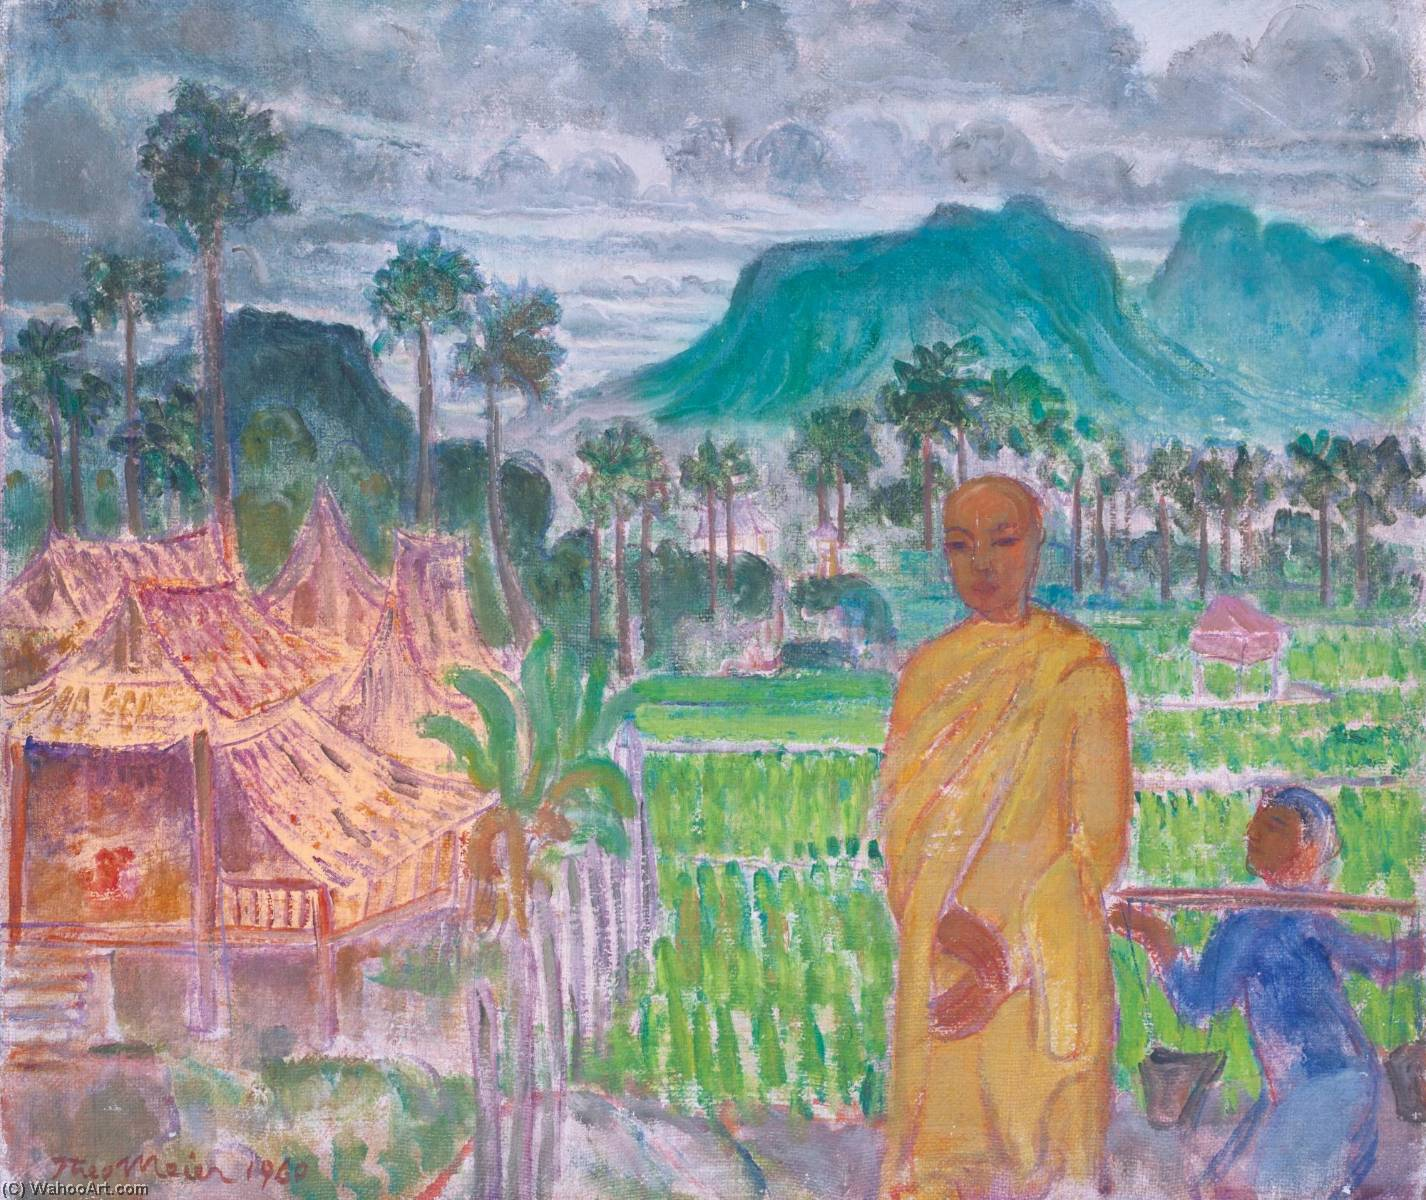 Monk in a Village, Hua Hin, Oil On Canvas by Theo Meier